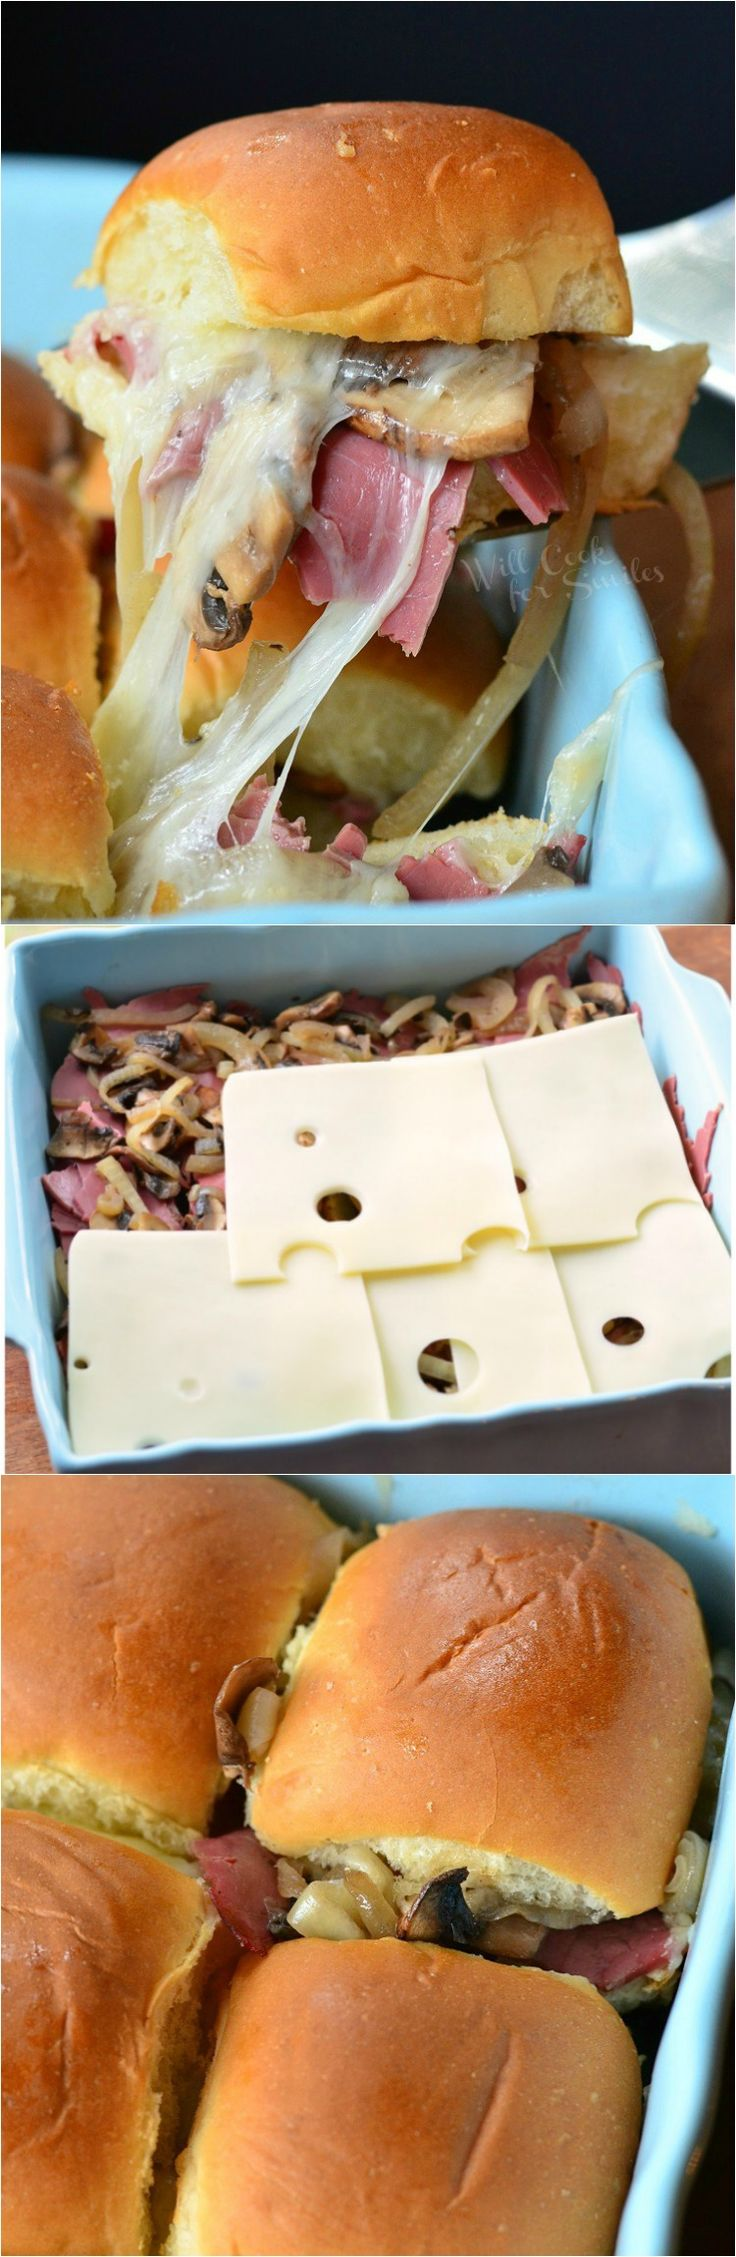 Baked Corned Beef Sliders | from willcookforsmiles.com  #sandwich #cornedbeef